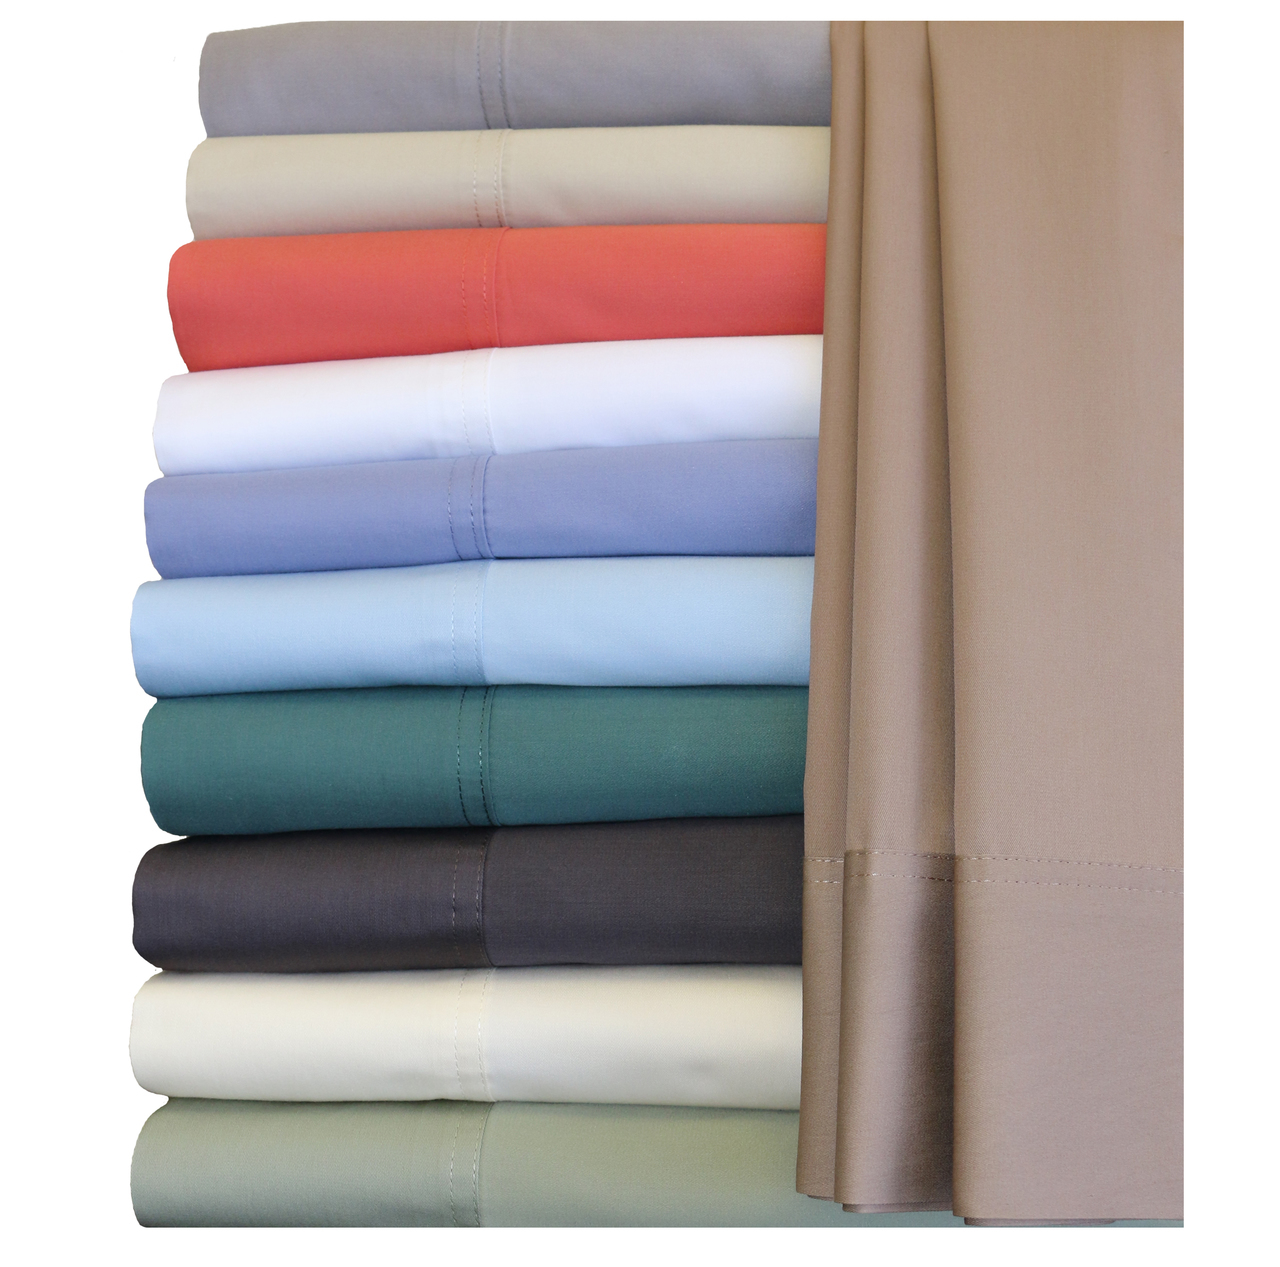 Royal Tradition. Hybrid Bamboo Collection Sheet Sets, Bamboo Cotton Blend.